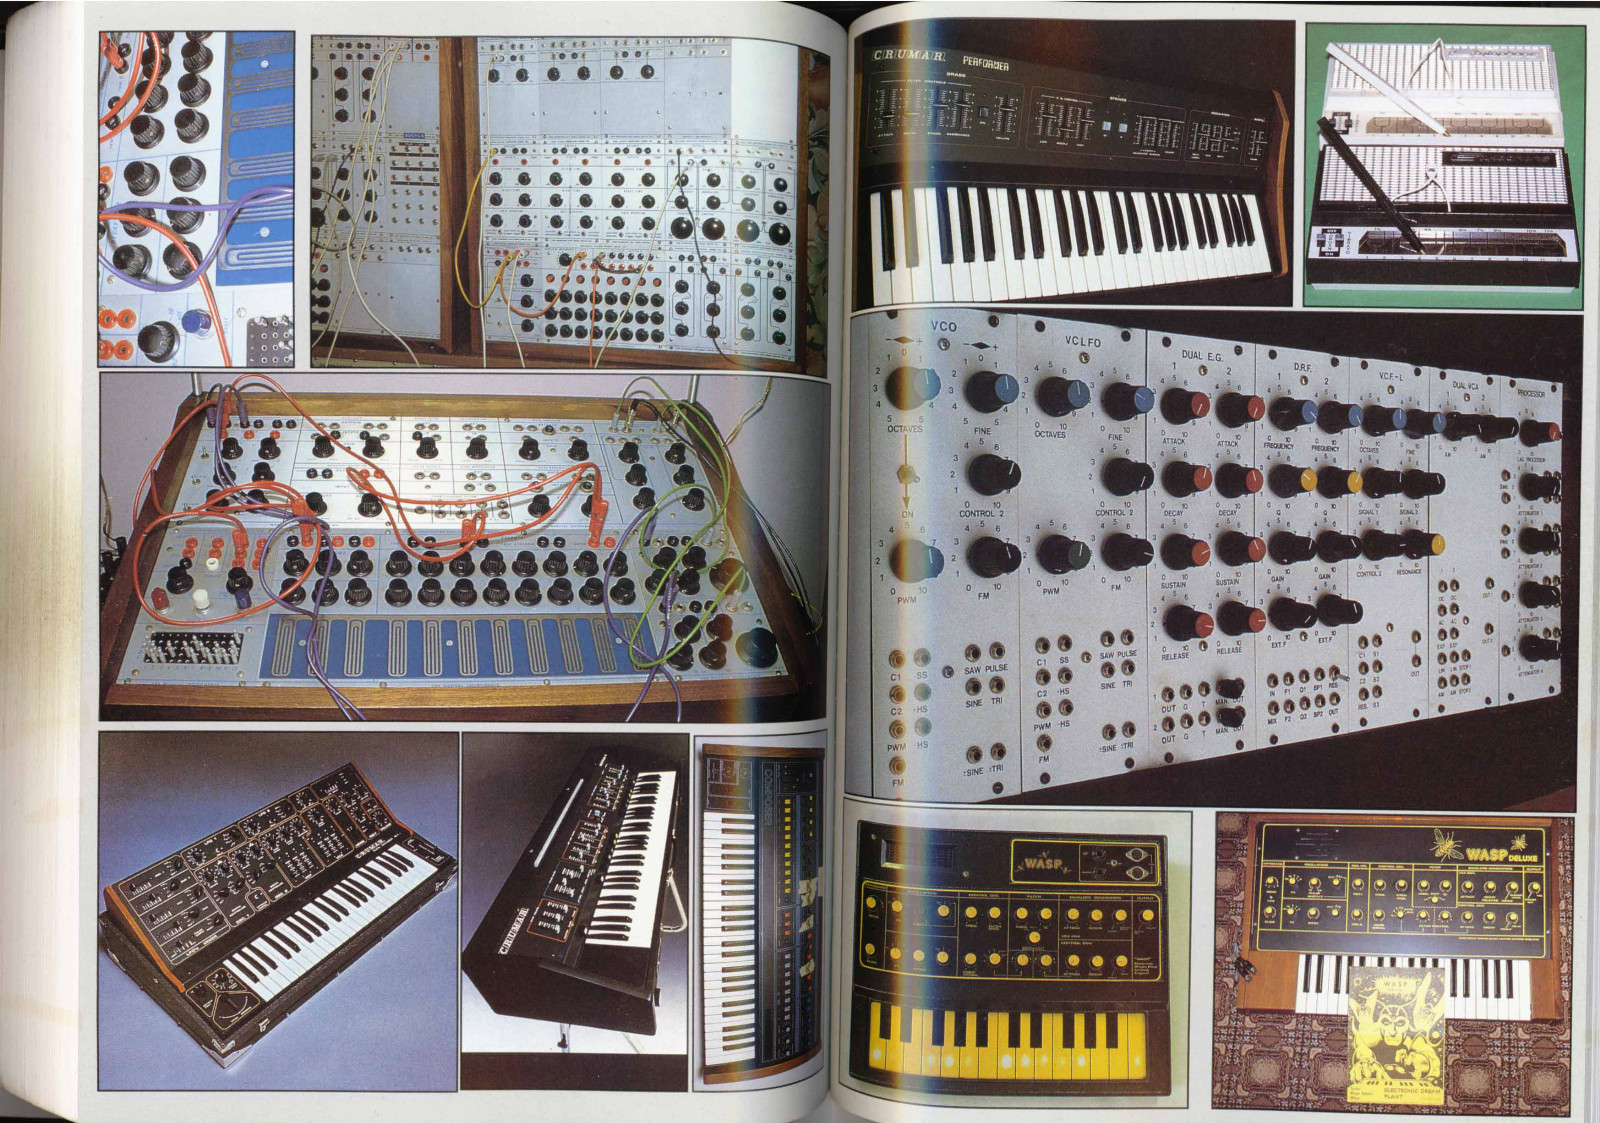 Matrixsynth Final Set Of A Z Analogue Synthesisers Clavioline Concert Model Tone Generator Schematic Wiring Diagram The First Edition Was Printed In Run 2000 And Copies This Revised Were Also Plus Few Printers Ons